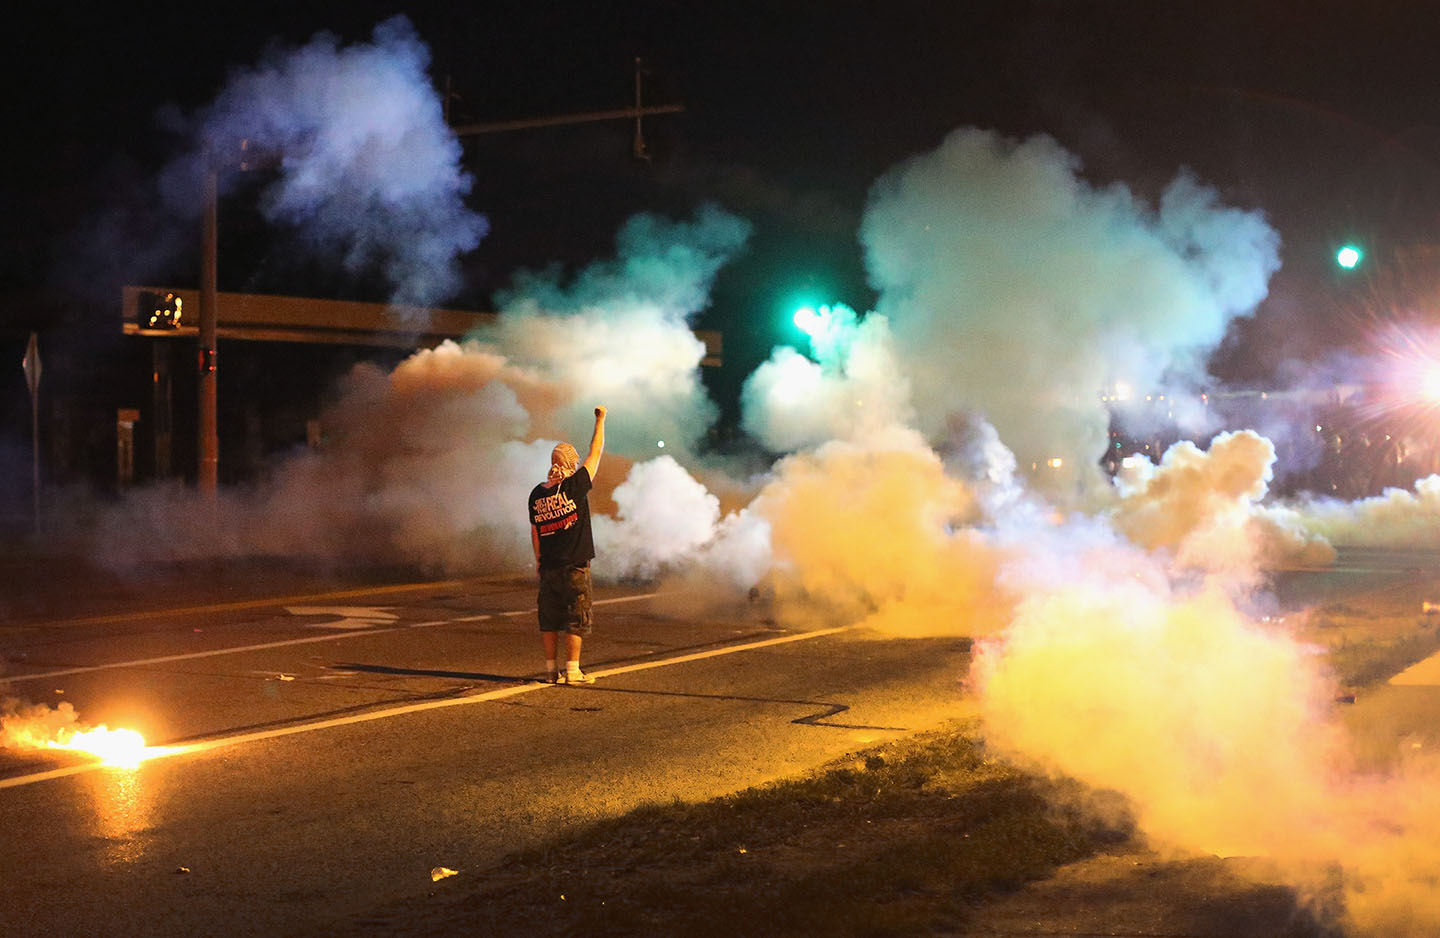 A demonstrator, protesting the death of teenager Michael Brown, stands his ground as police fire tear gas on August 13, 2014 in Ferguson, Missouri.